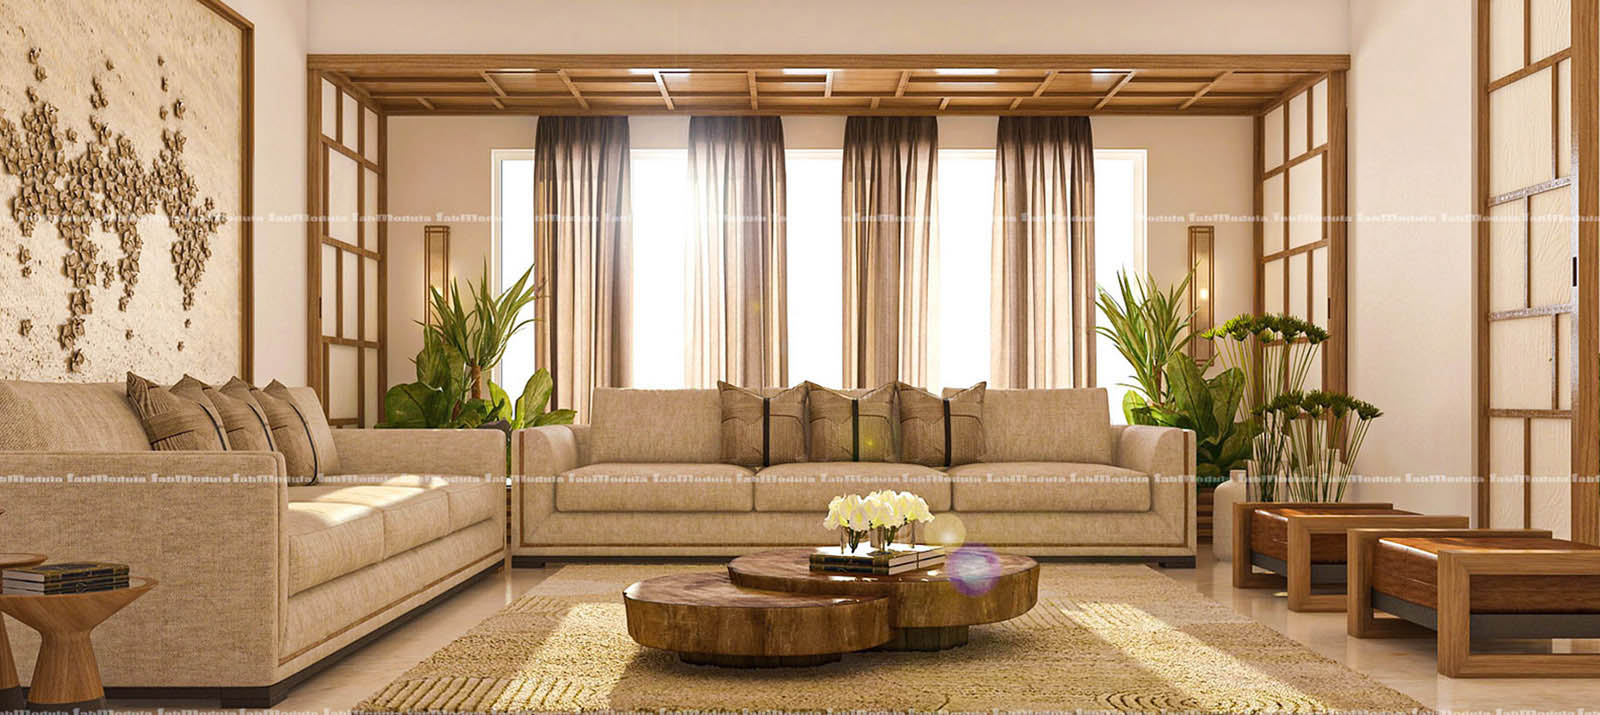 Fabmodula interior designers bangalore best interior design for Famous interior designers